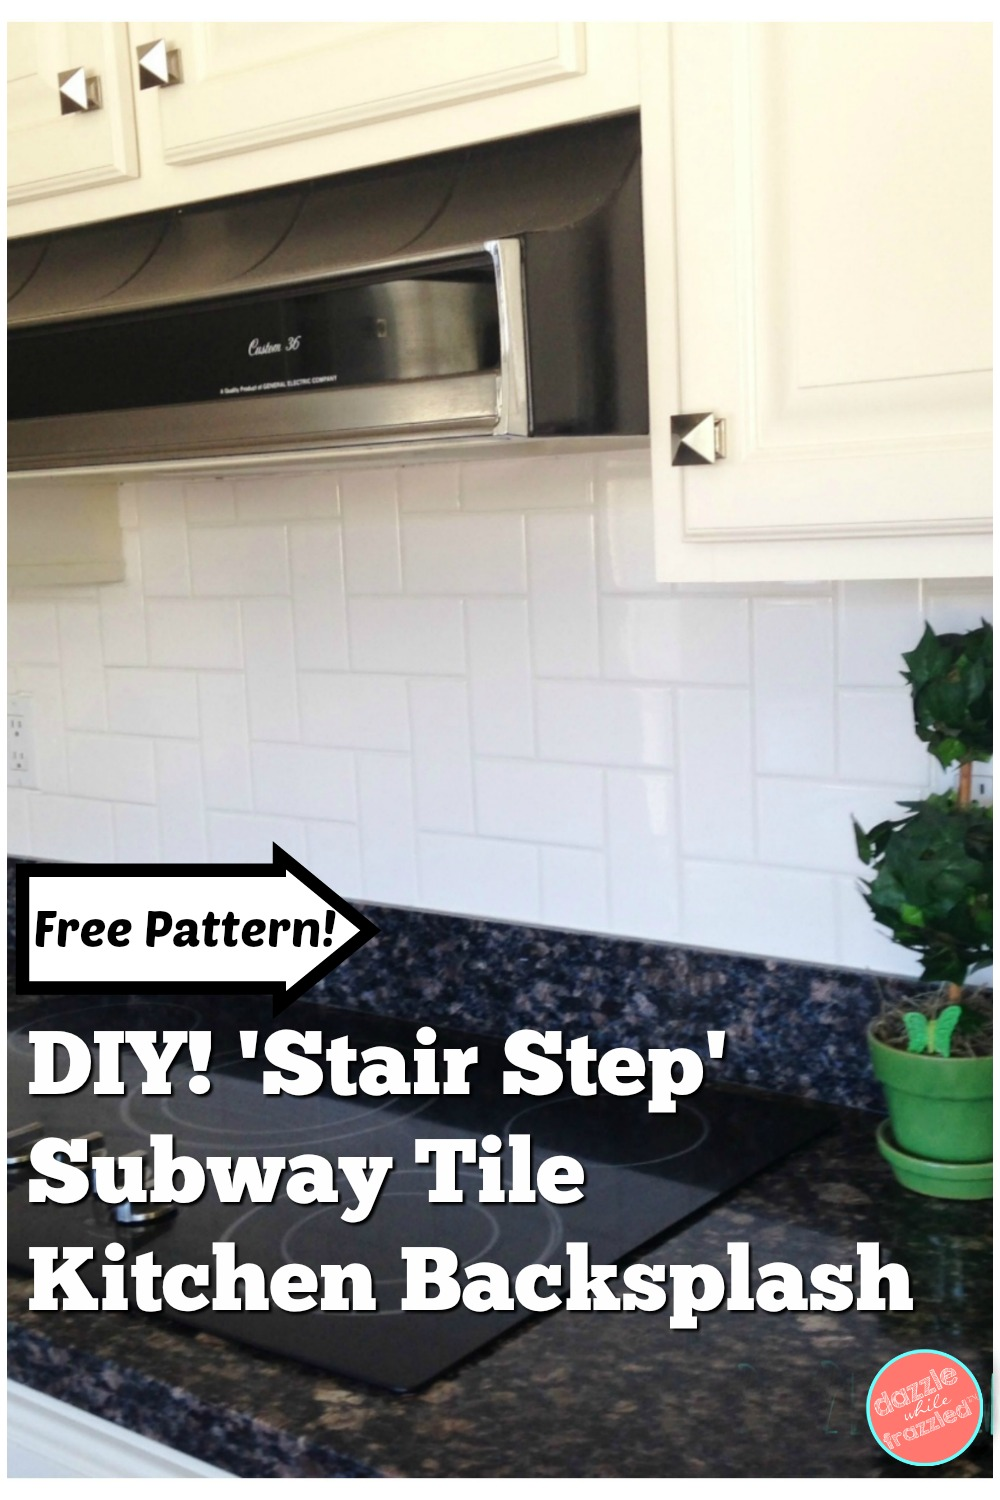 DIY stair step subway tile kitchen backsplash with free pattern download.